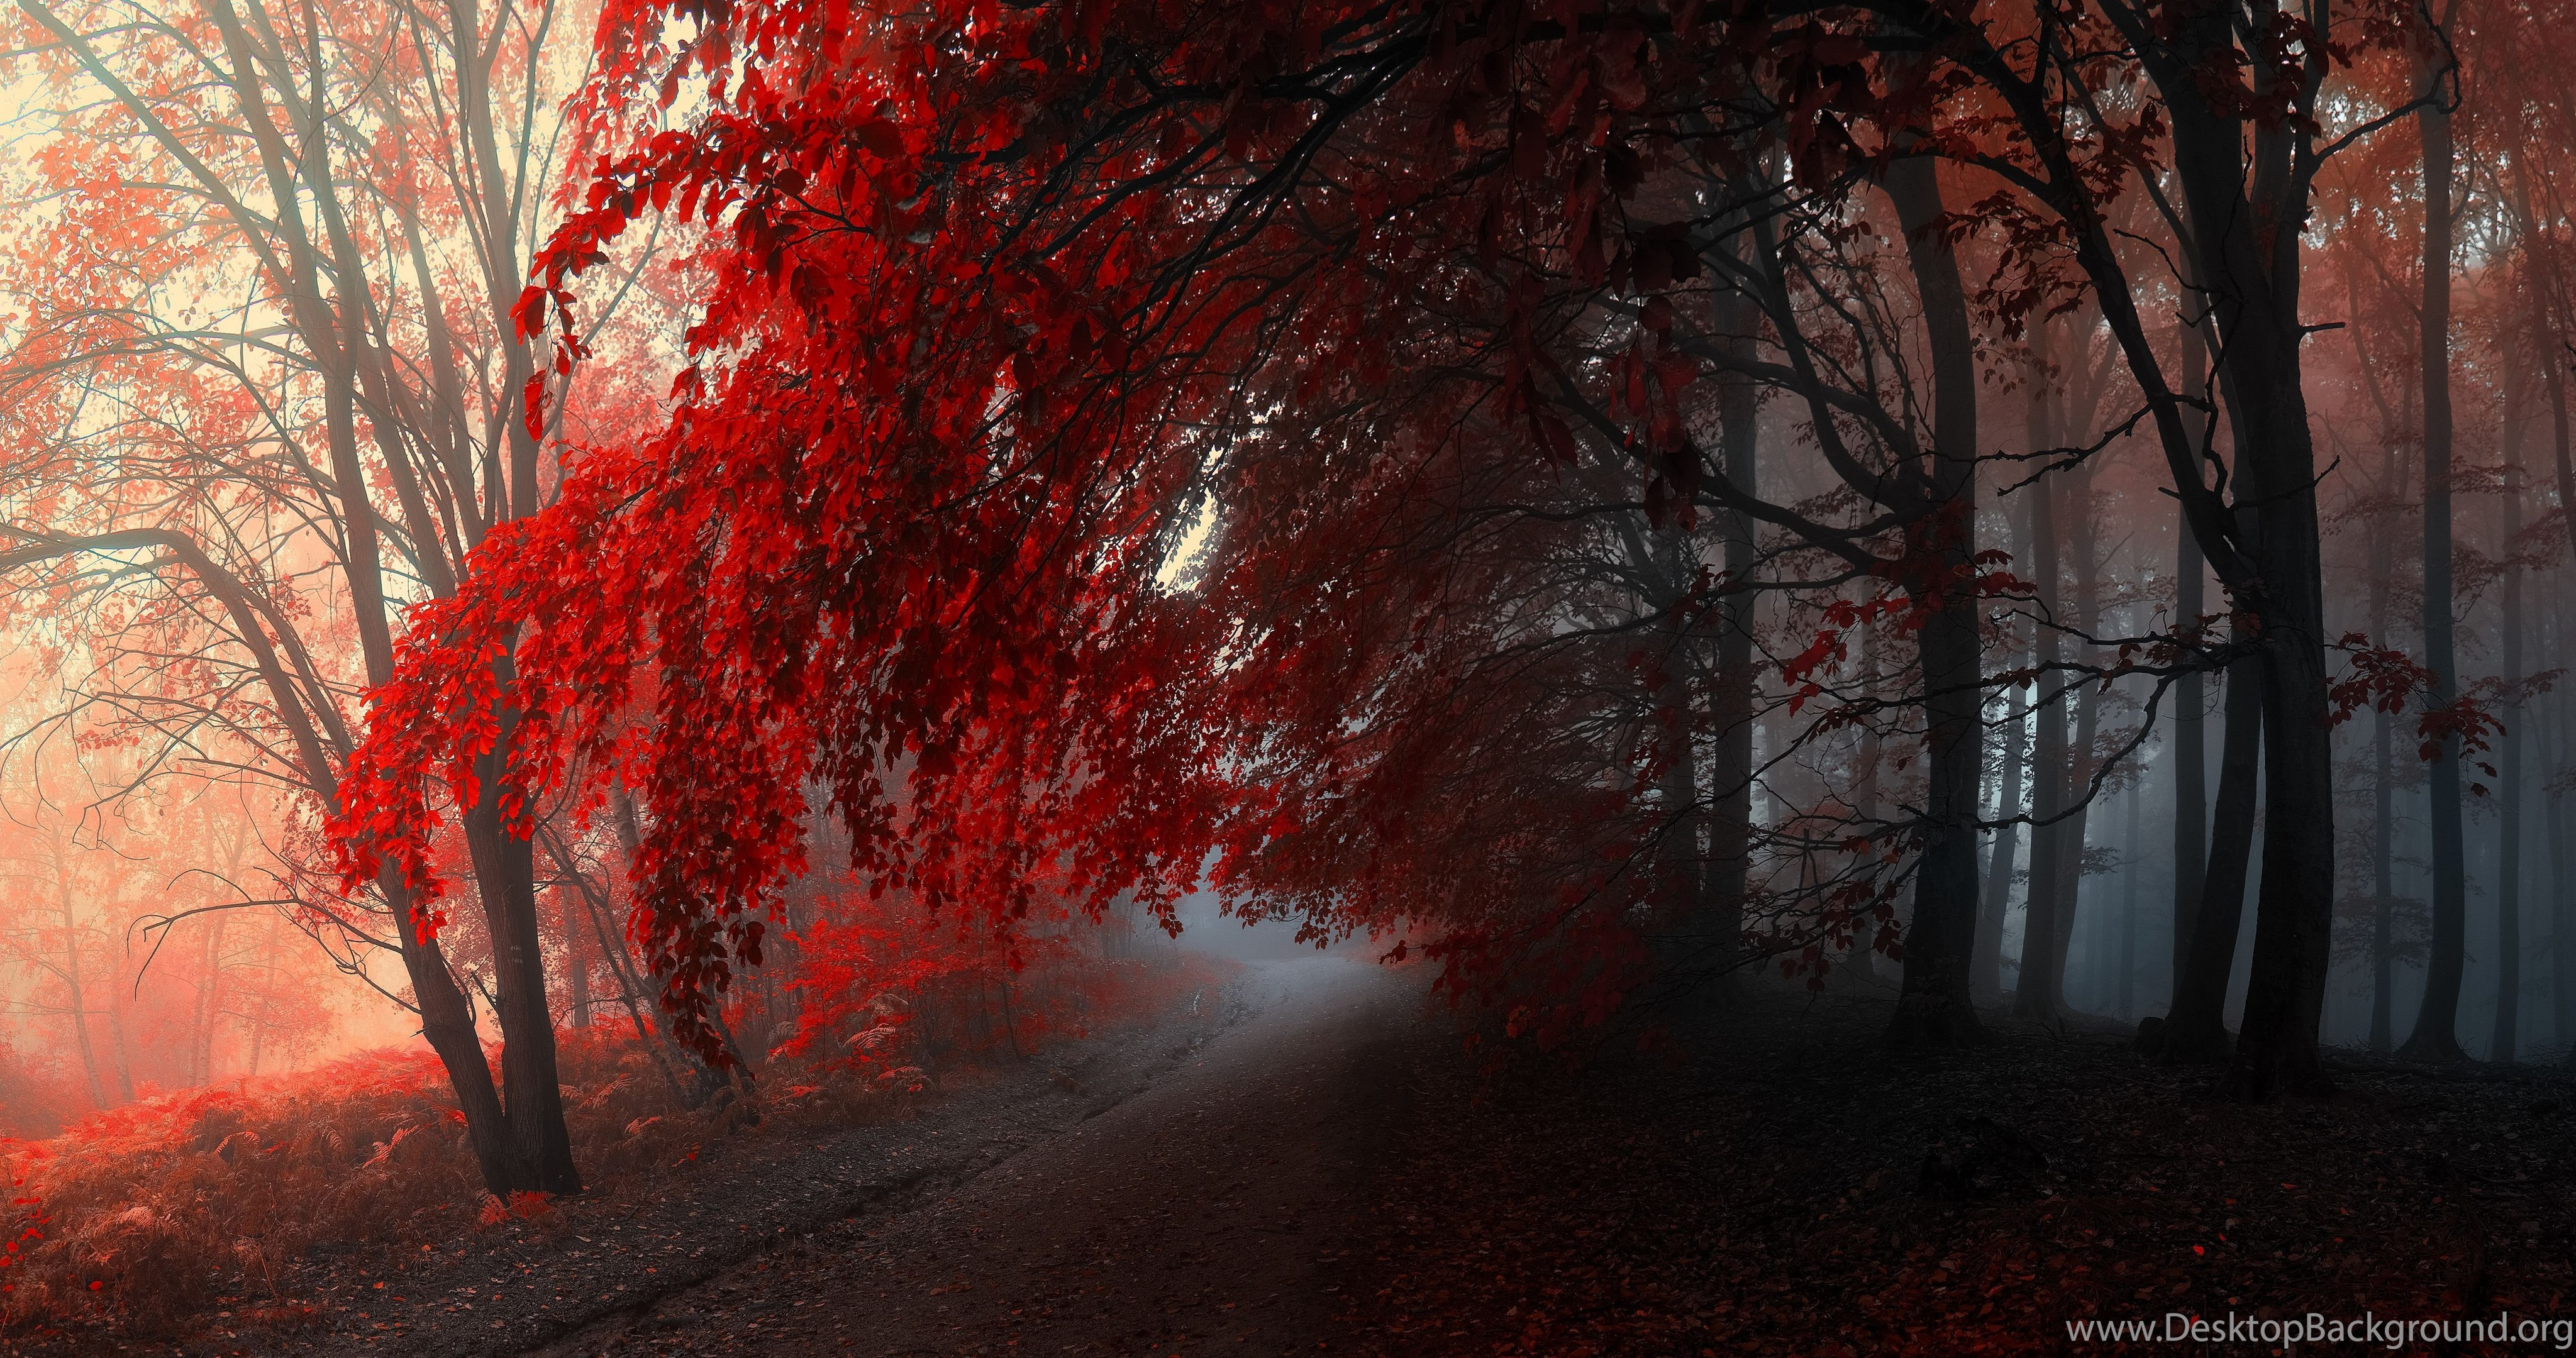 Autumn Red Forest Hd Wallpaper - Islam Quotes About Revenge , HD Wallpaper & Backgrounds